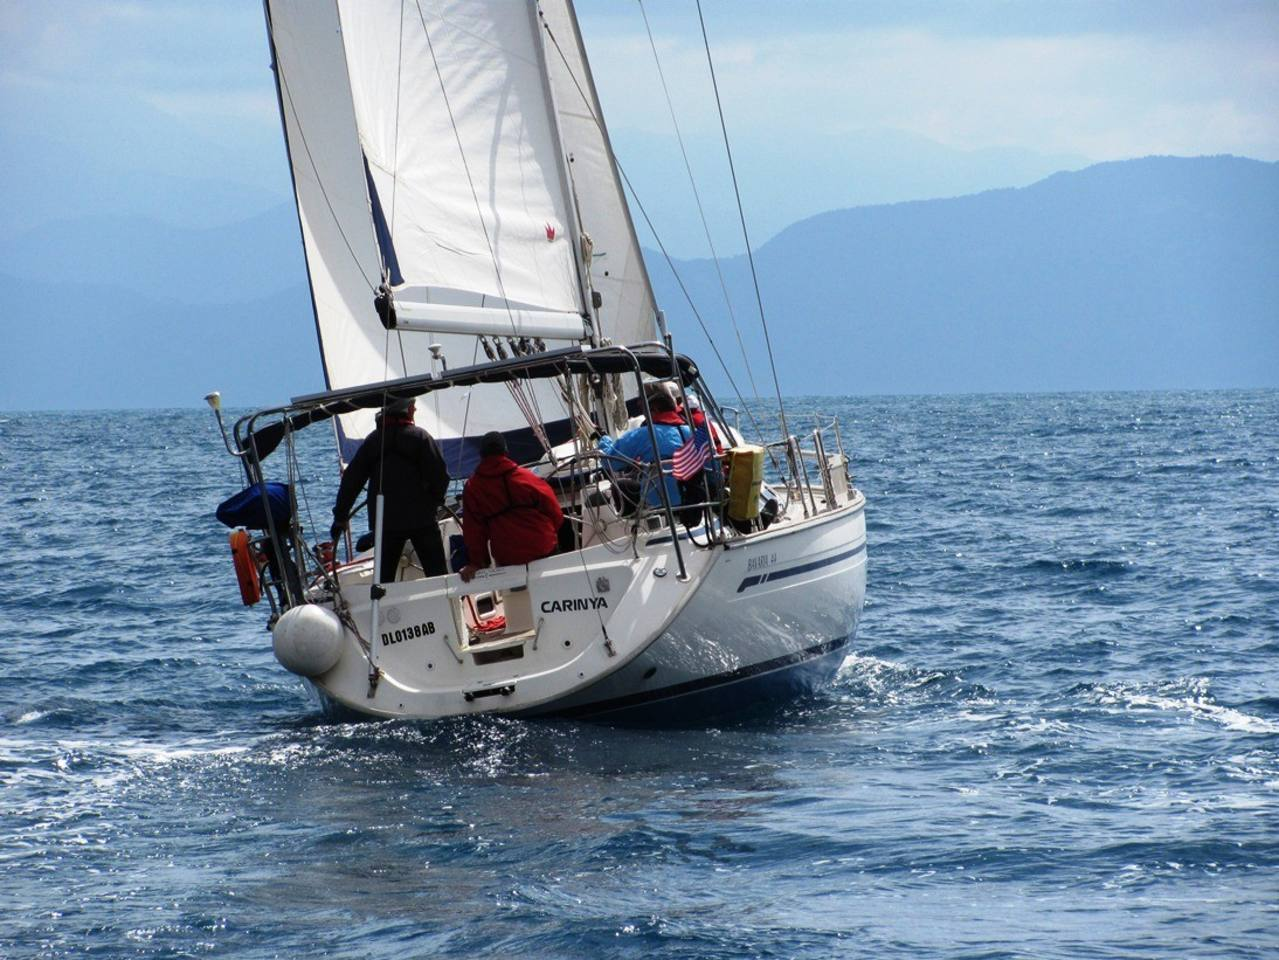 Sailing on a private acht Bavaria 44 with captan photo 5795702